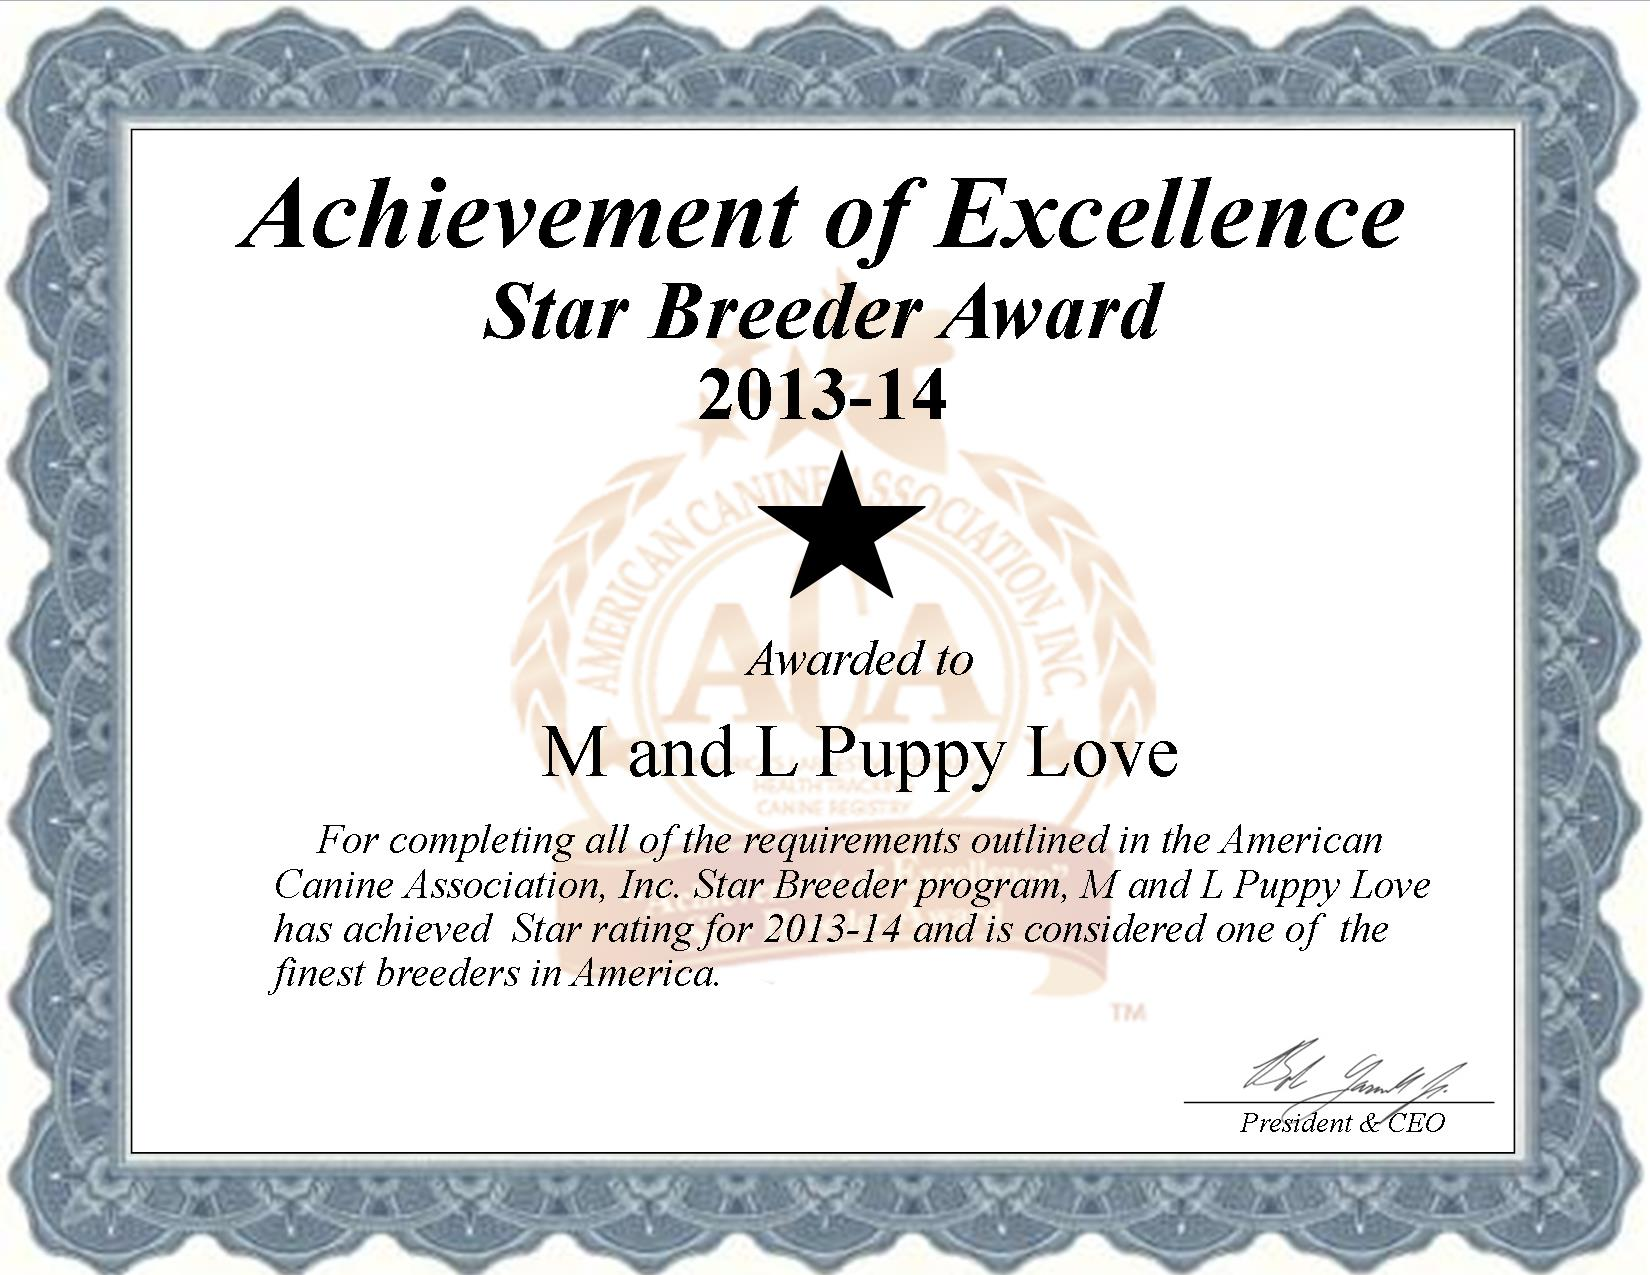 M and L Puppy Love Kennel, M and L, Puppy Love, Kennel, breeder, star breeder, aca, star breeder, 2 star, archer city, texas, tx, dog, puppy, puppies, dog breeder, dog breeders, texas breeder, M and L Puppy Love dog breeder